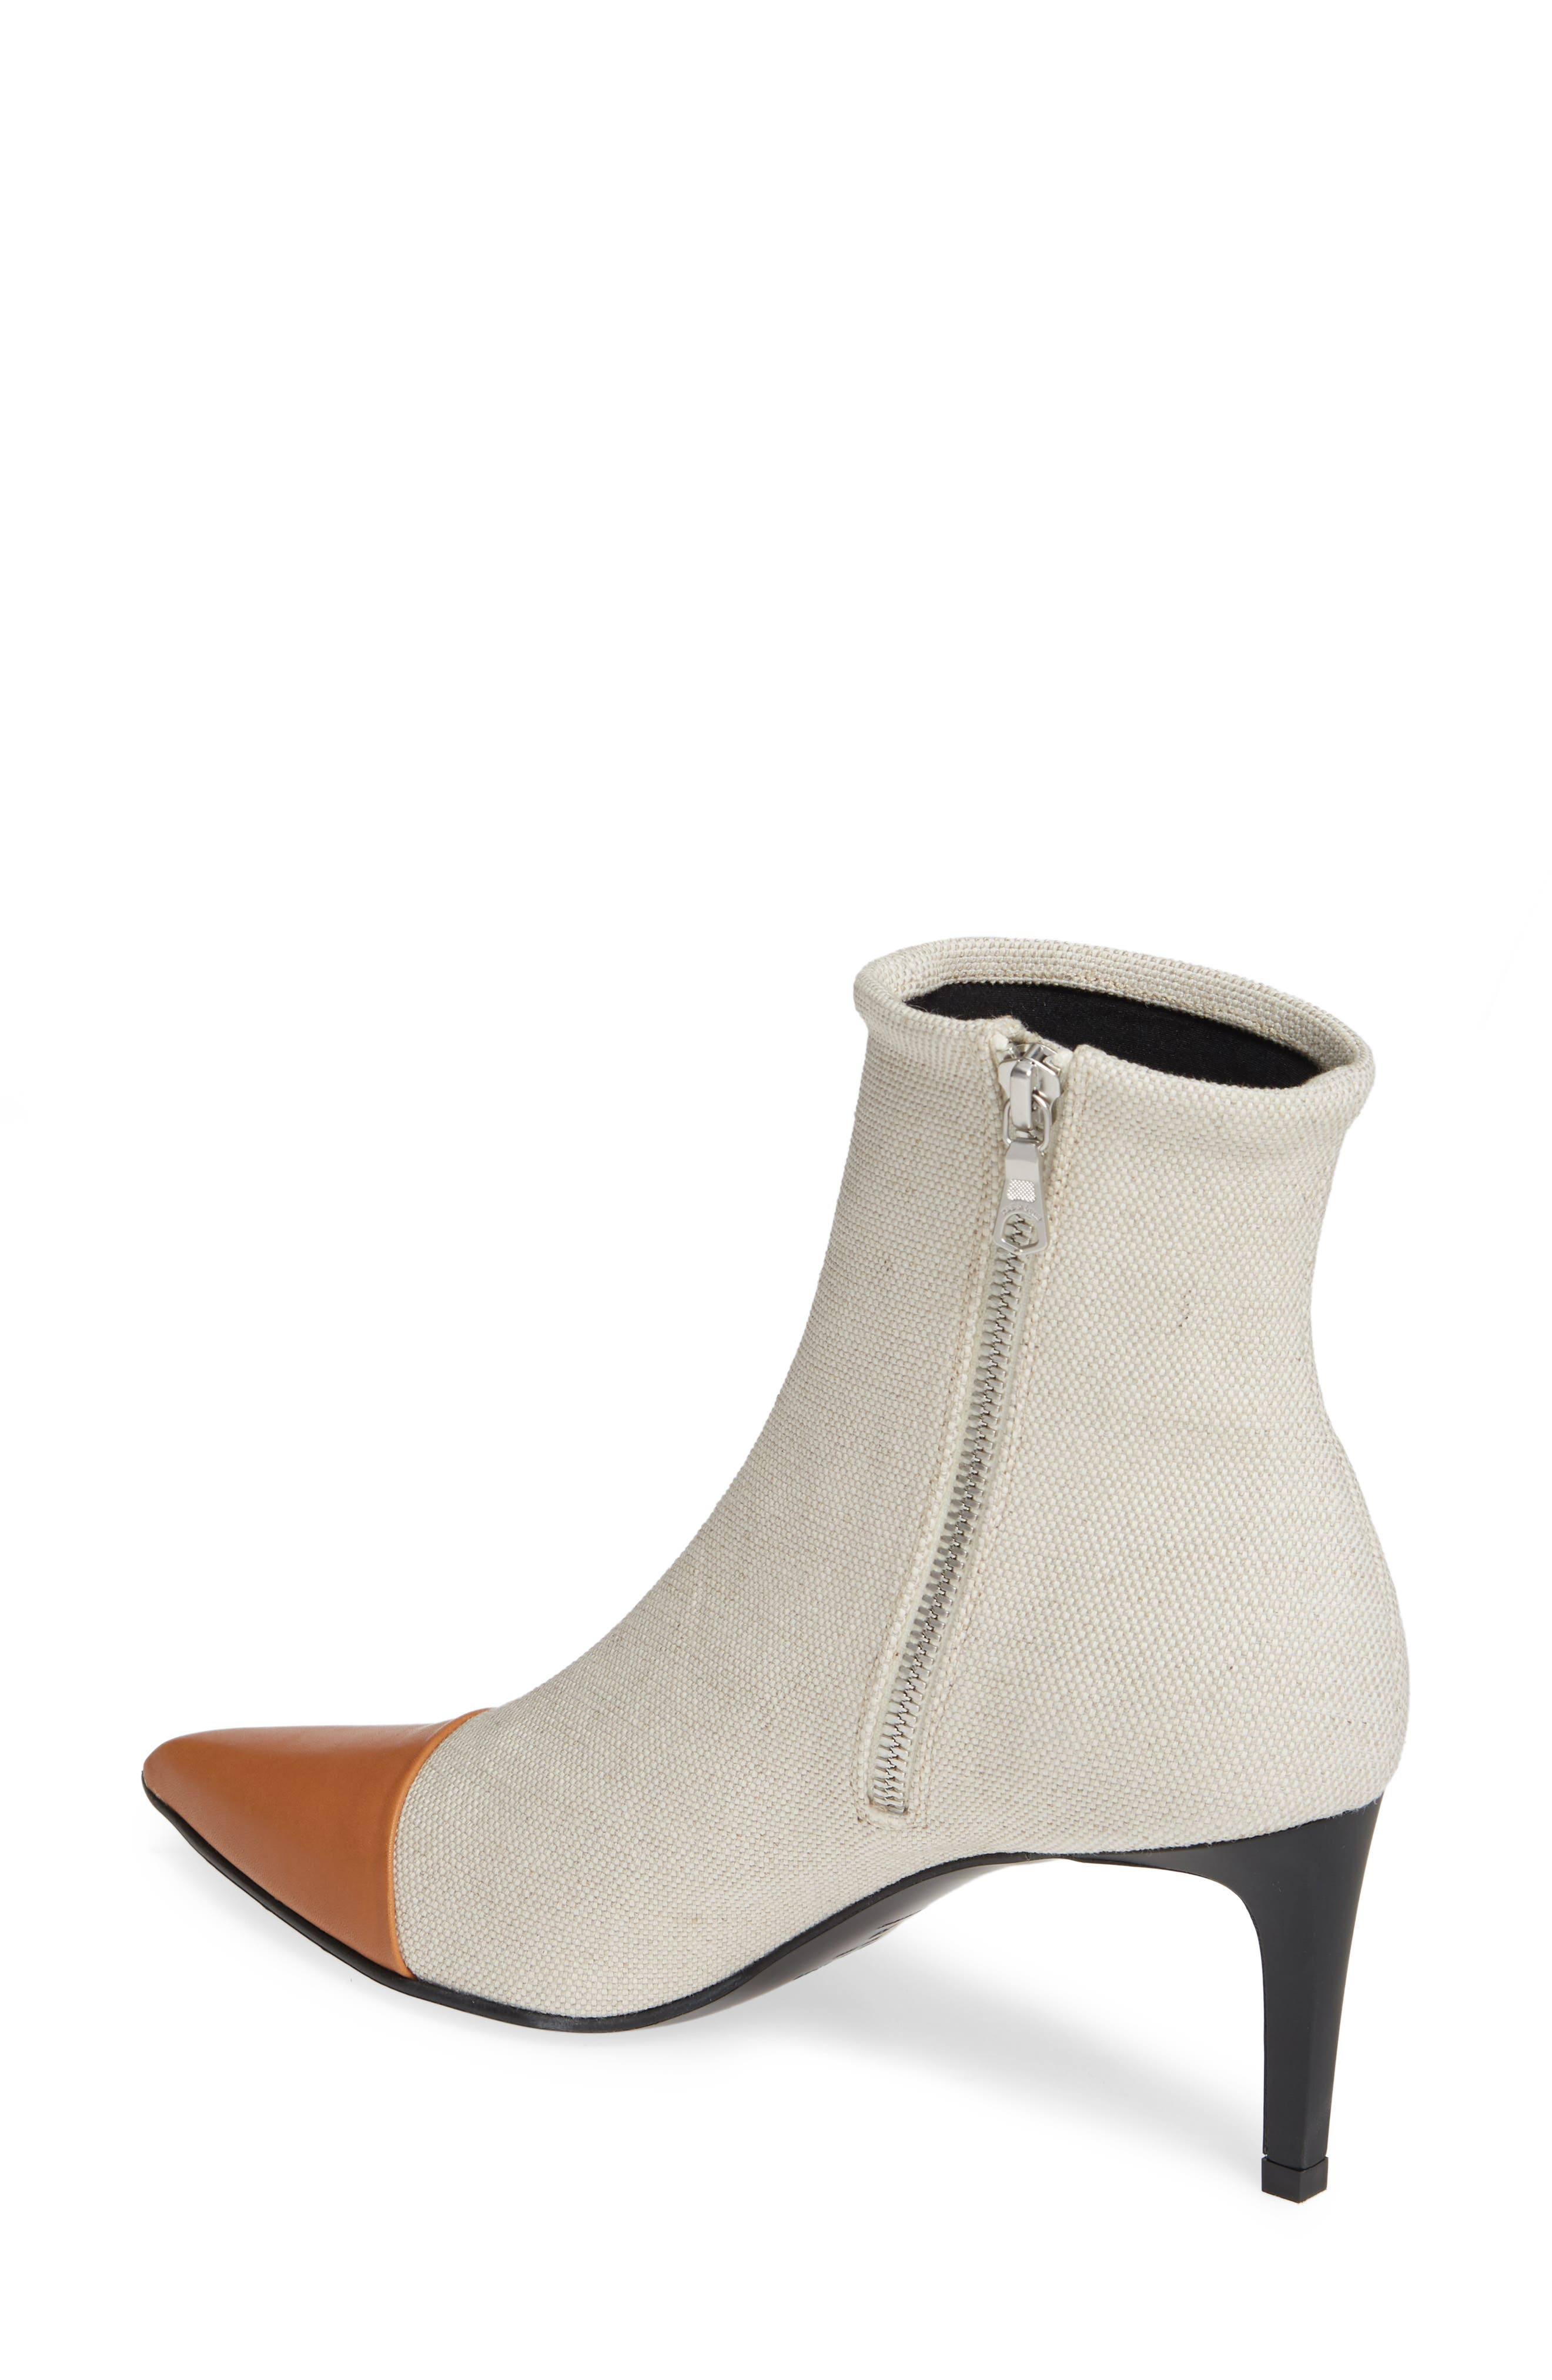 Beha Pointy Toe Bootie,                             Alternate thumbnail 2, color,                             900